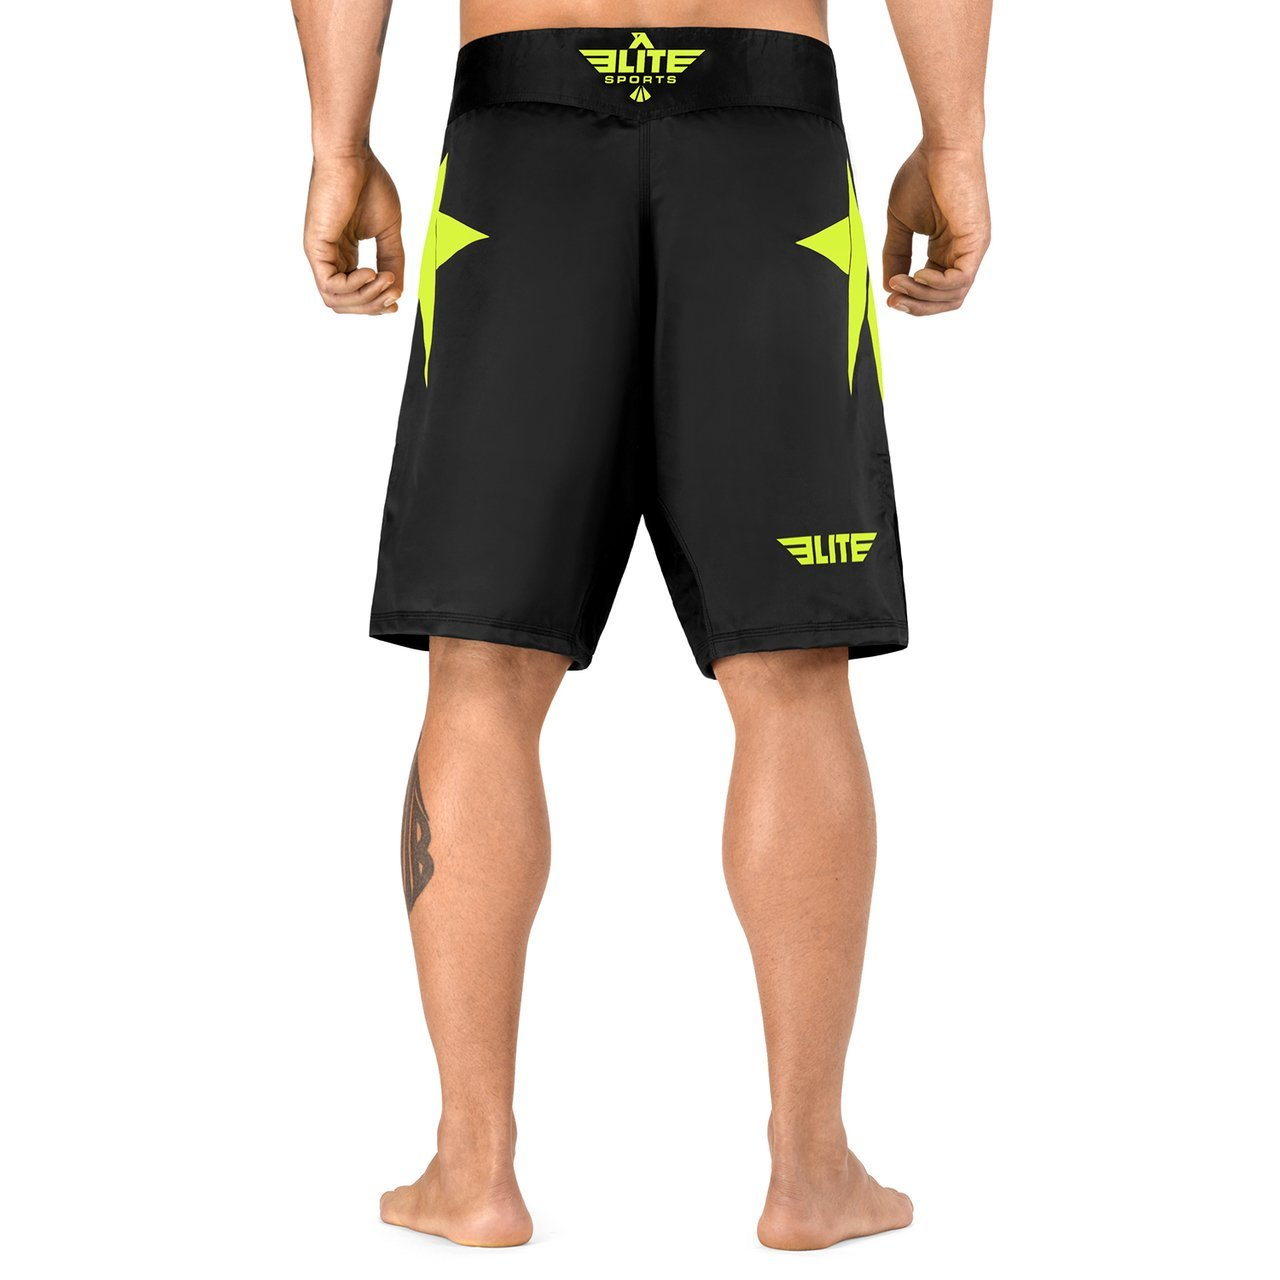 Load image into Gallery viewer, Elite Sports Star Series Sublimation Black/Hi Viz Training Shorts